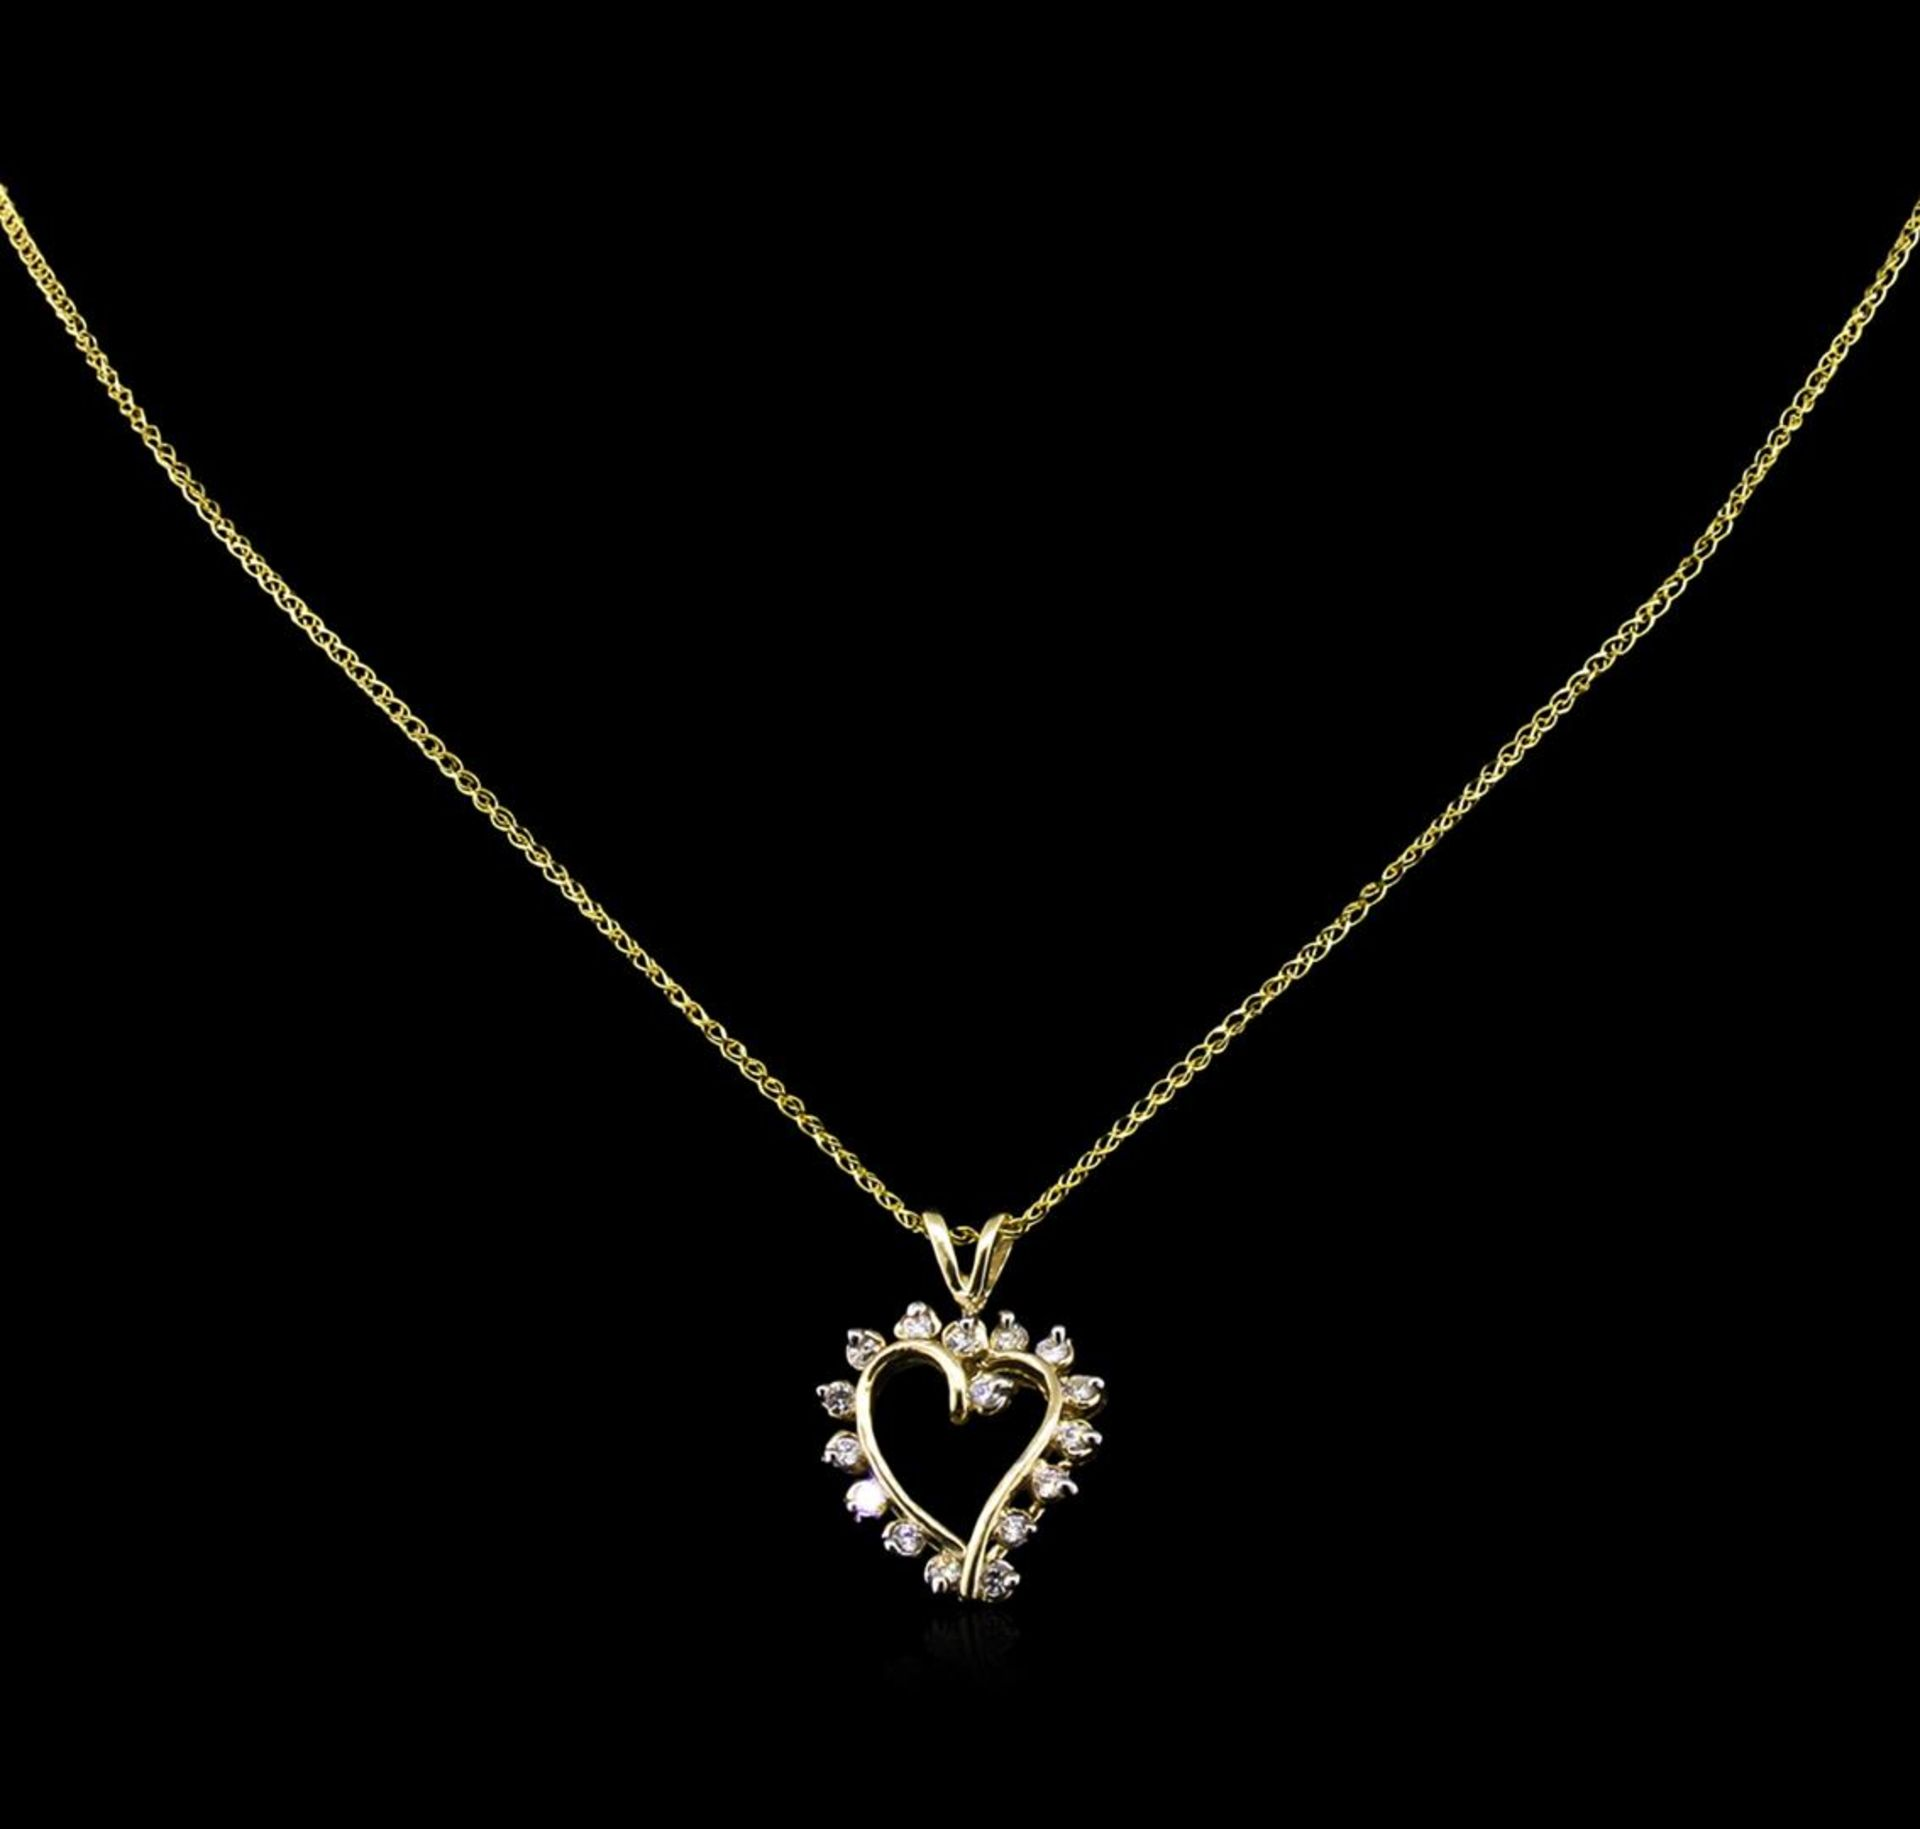 0.72 ctw Diamond Pendant With Chain - 14KT Yellow Gold - Image 2 of 2